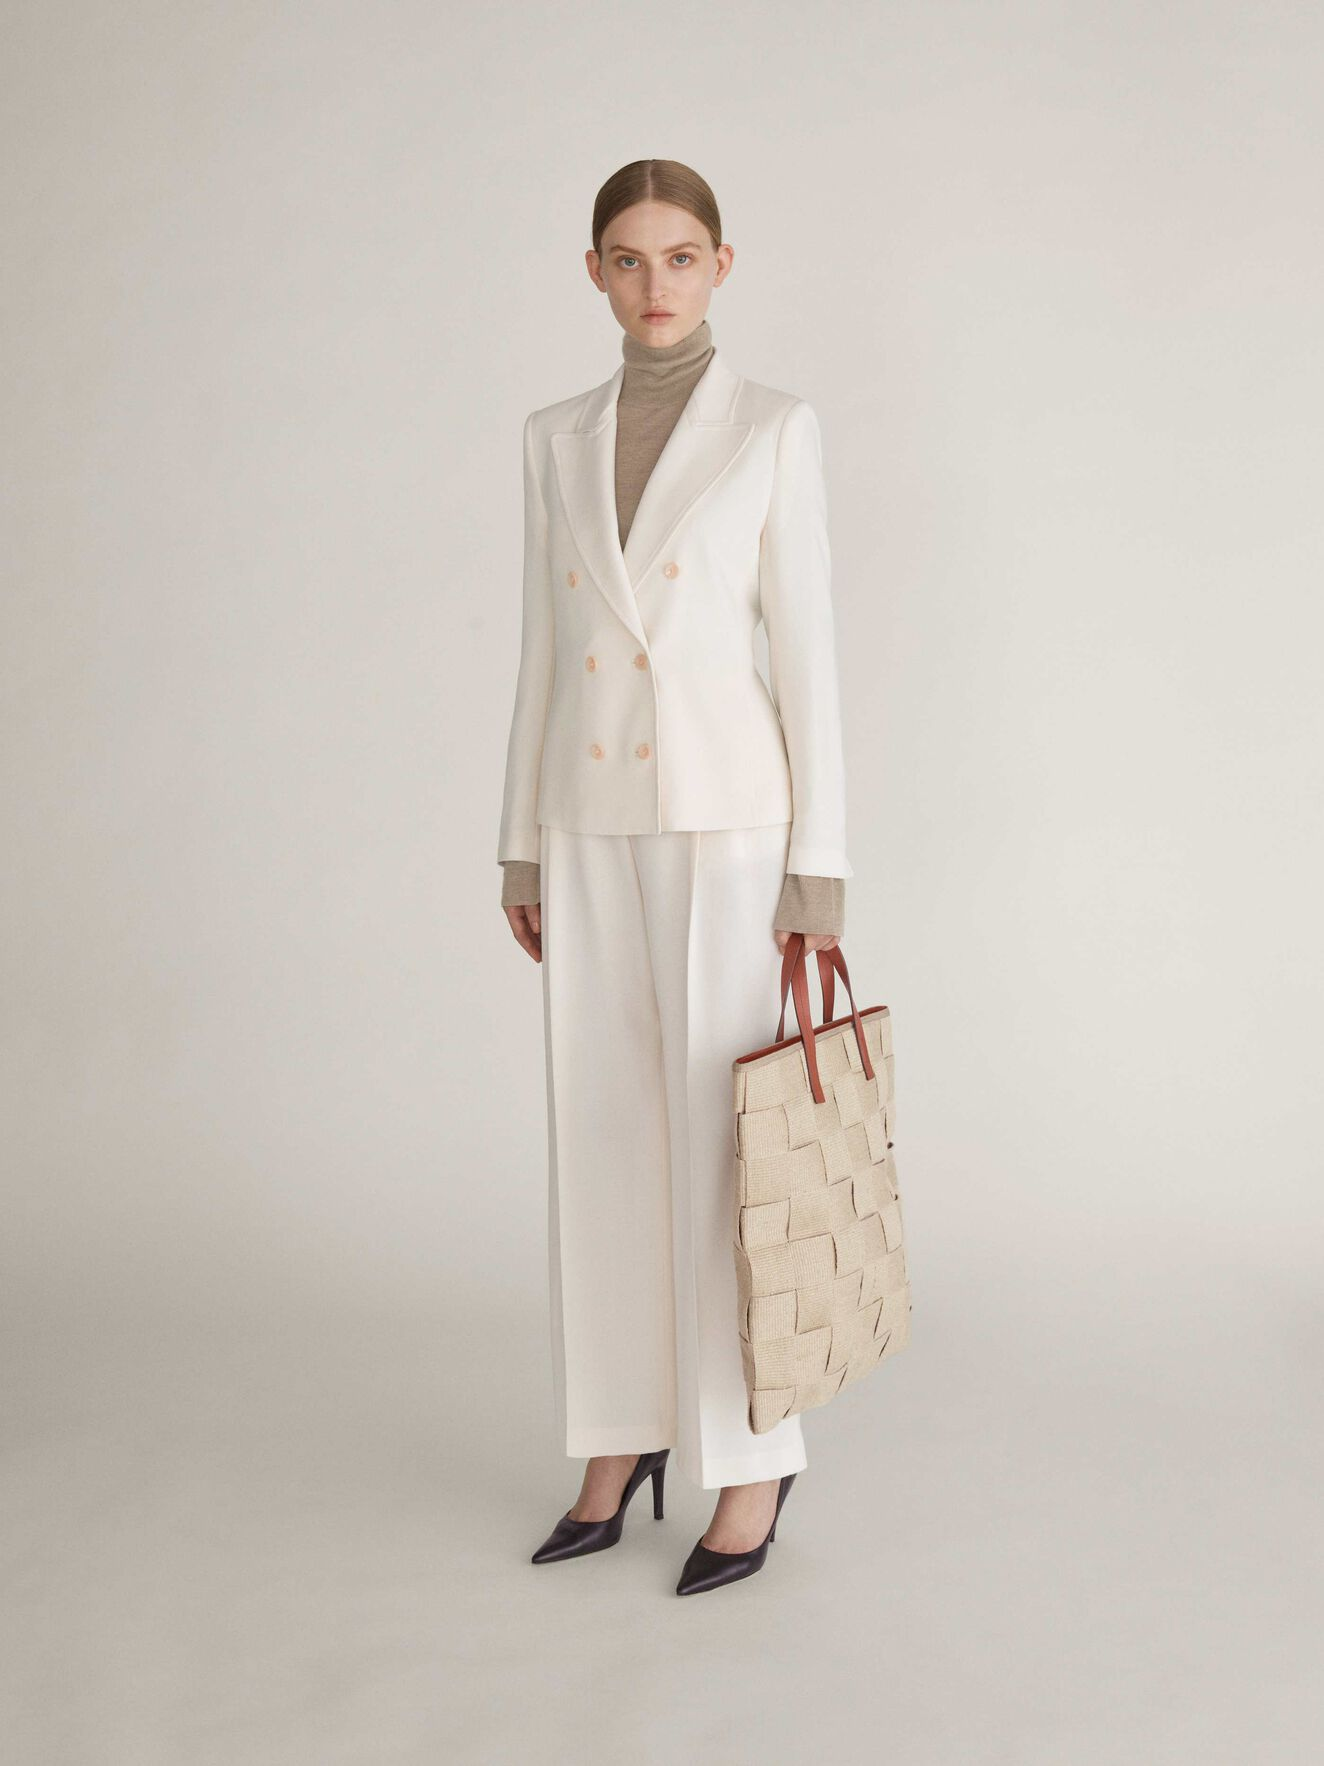 Hylle Blazer in Whipped Cream from Tiger of Sweden